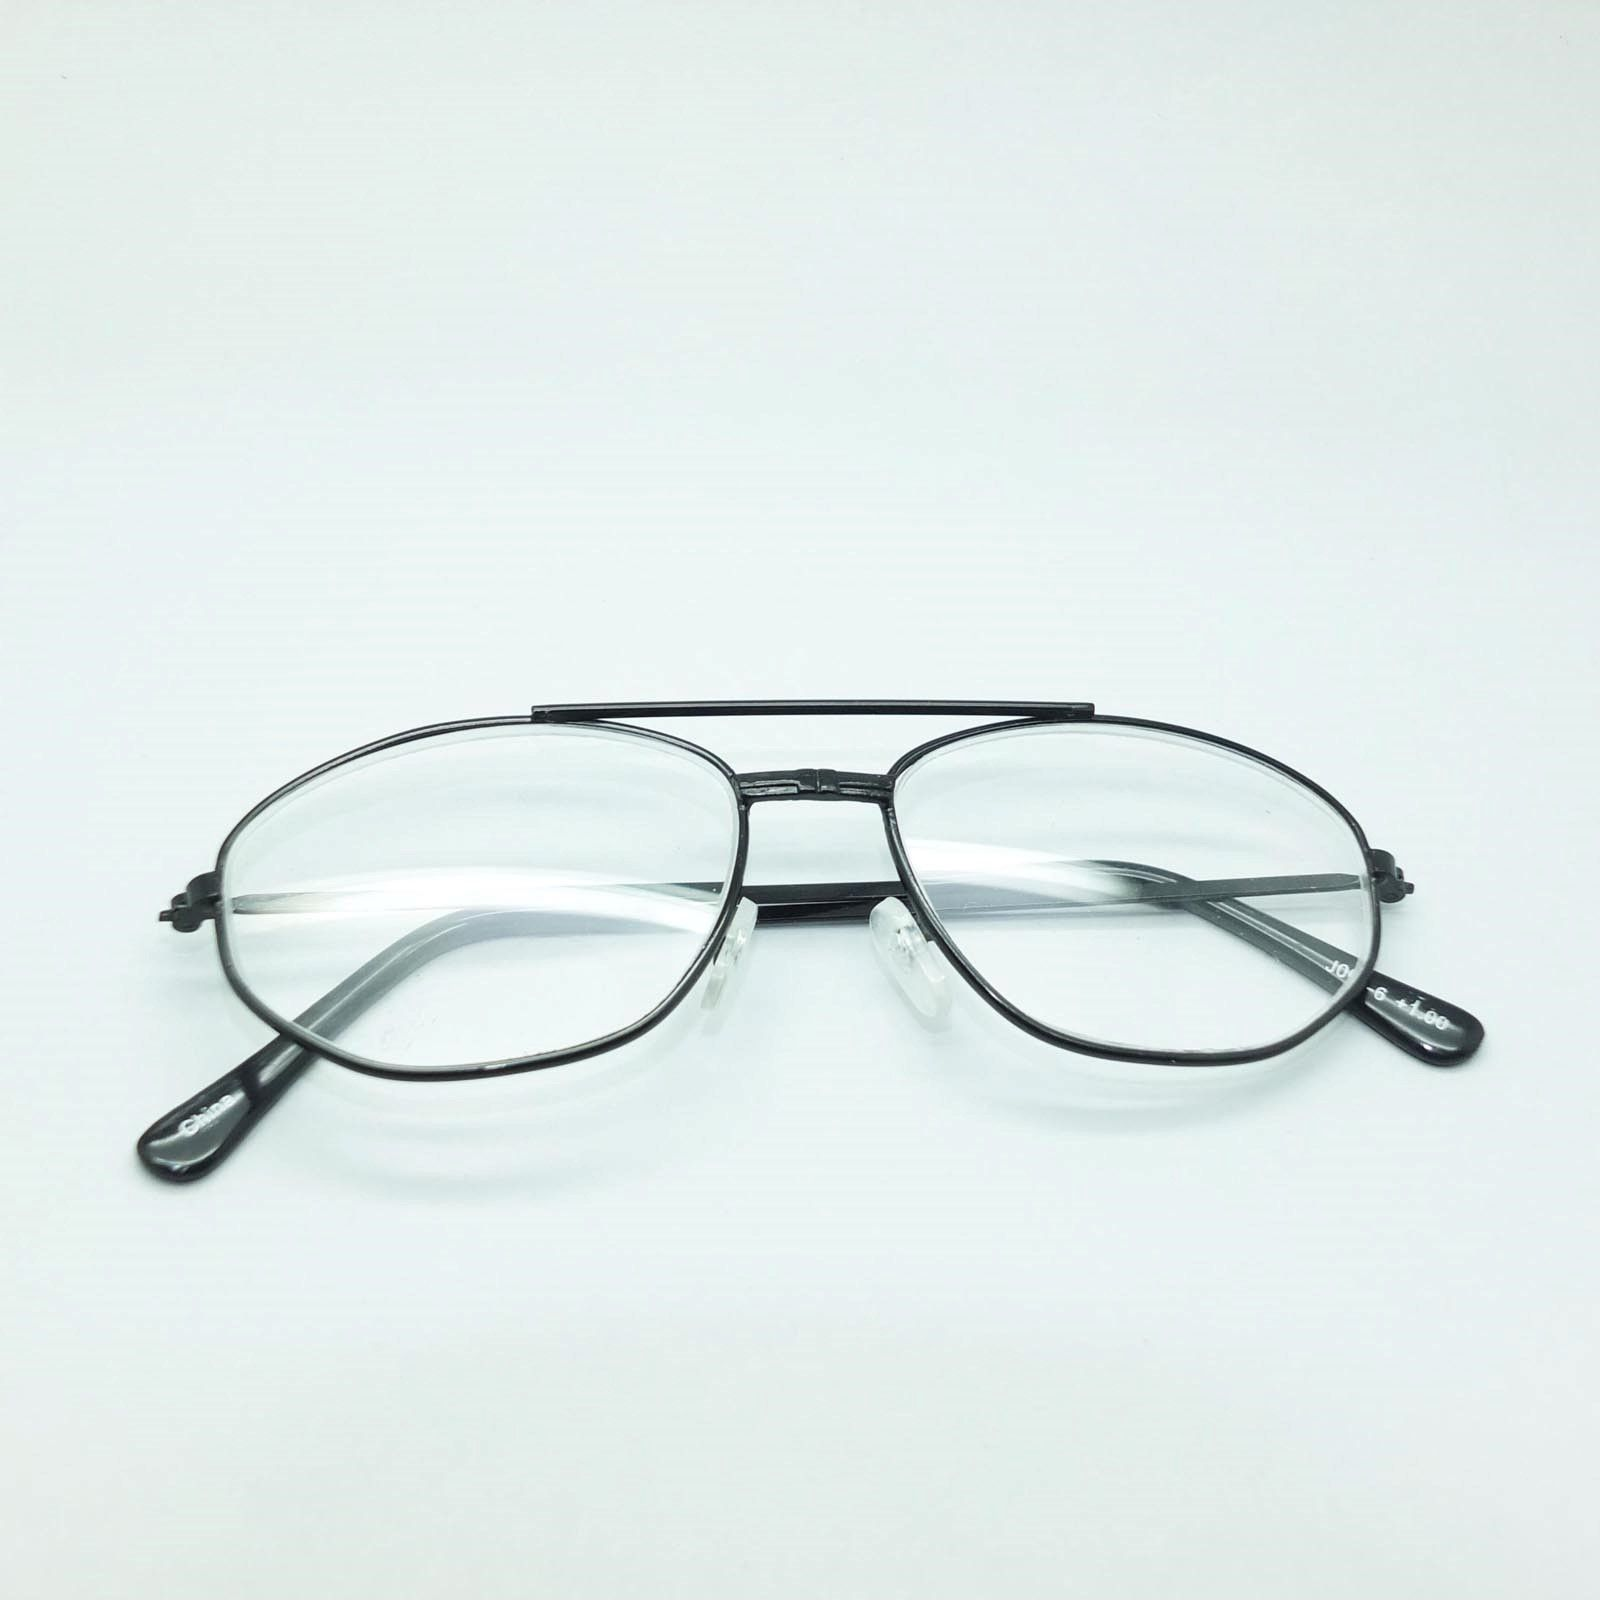 Reading Glasses Mini Aviator Matte Black Metal Frame +3.00 Lens Strength image 4